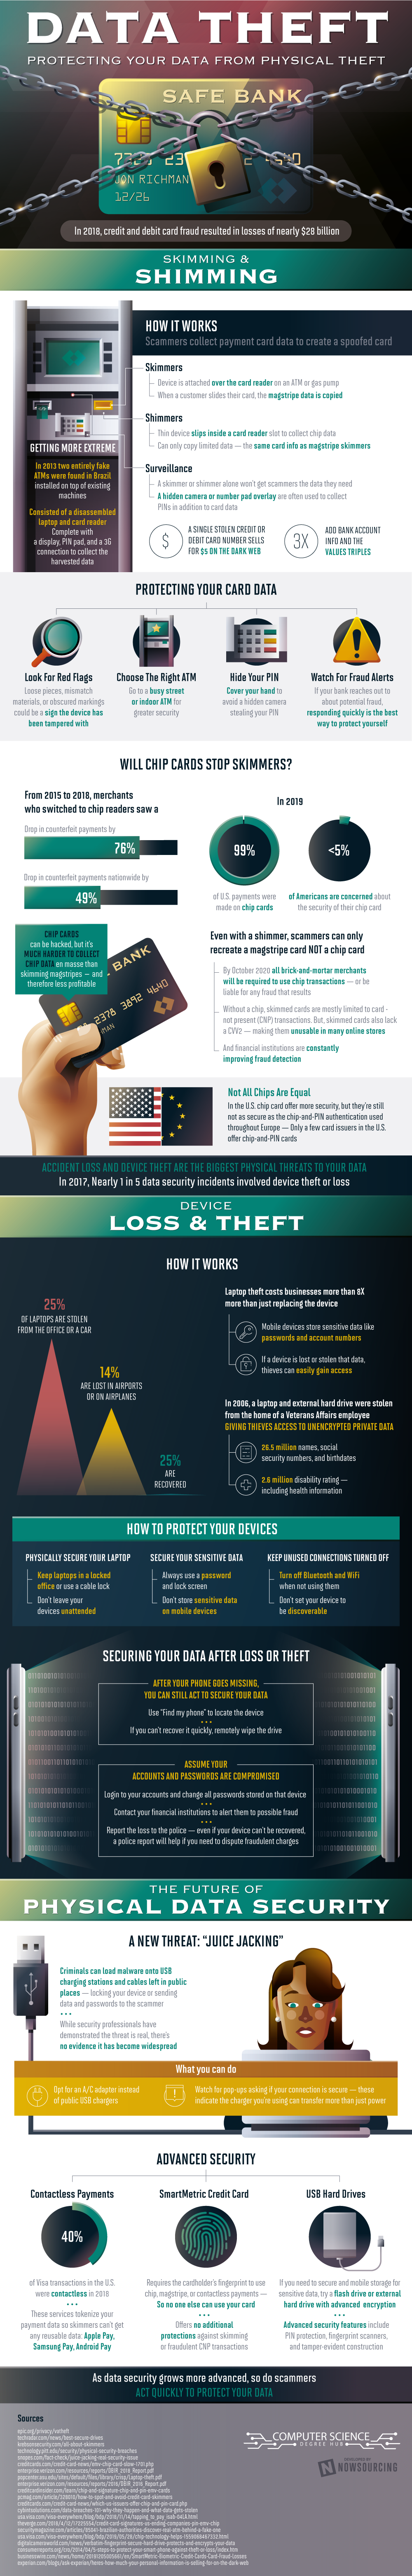 Data Theft: Protecting Your Data from Physical Theft #infographic